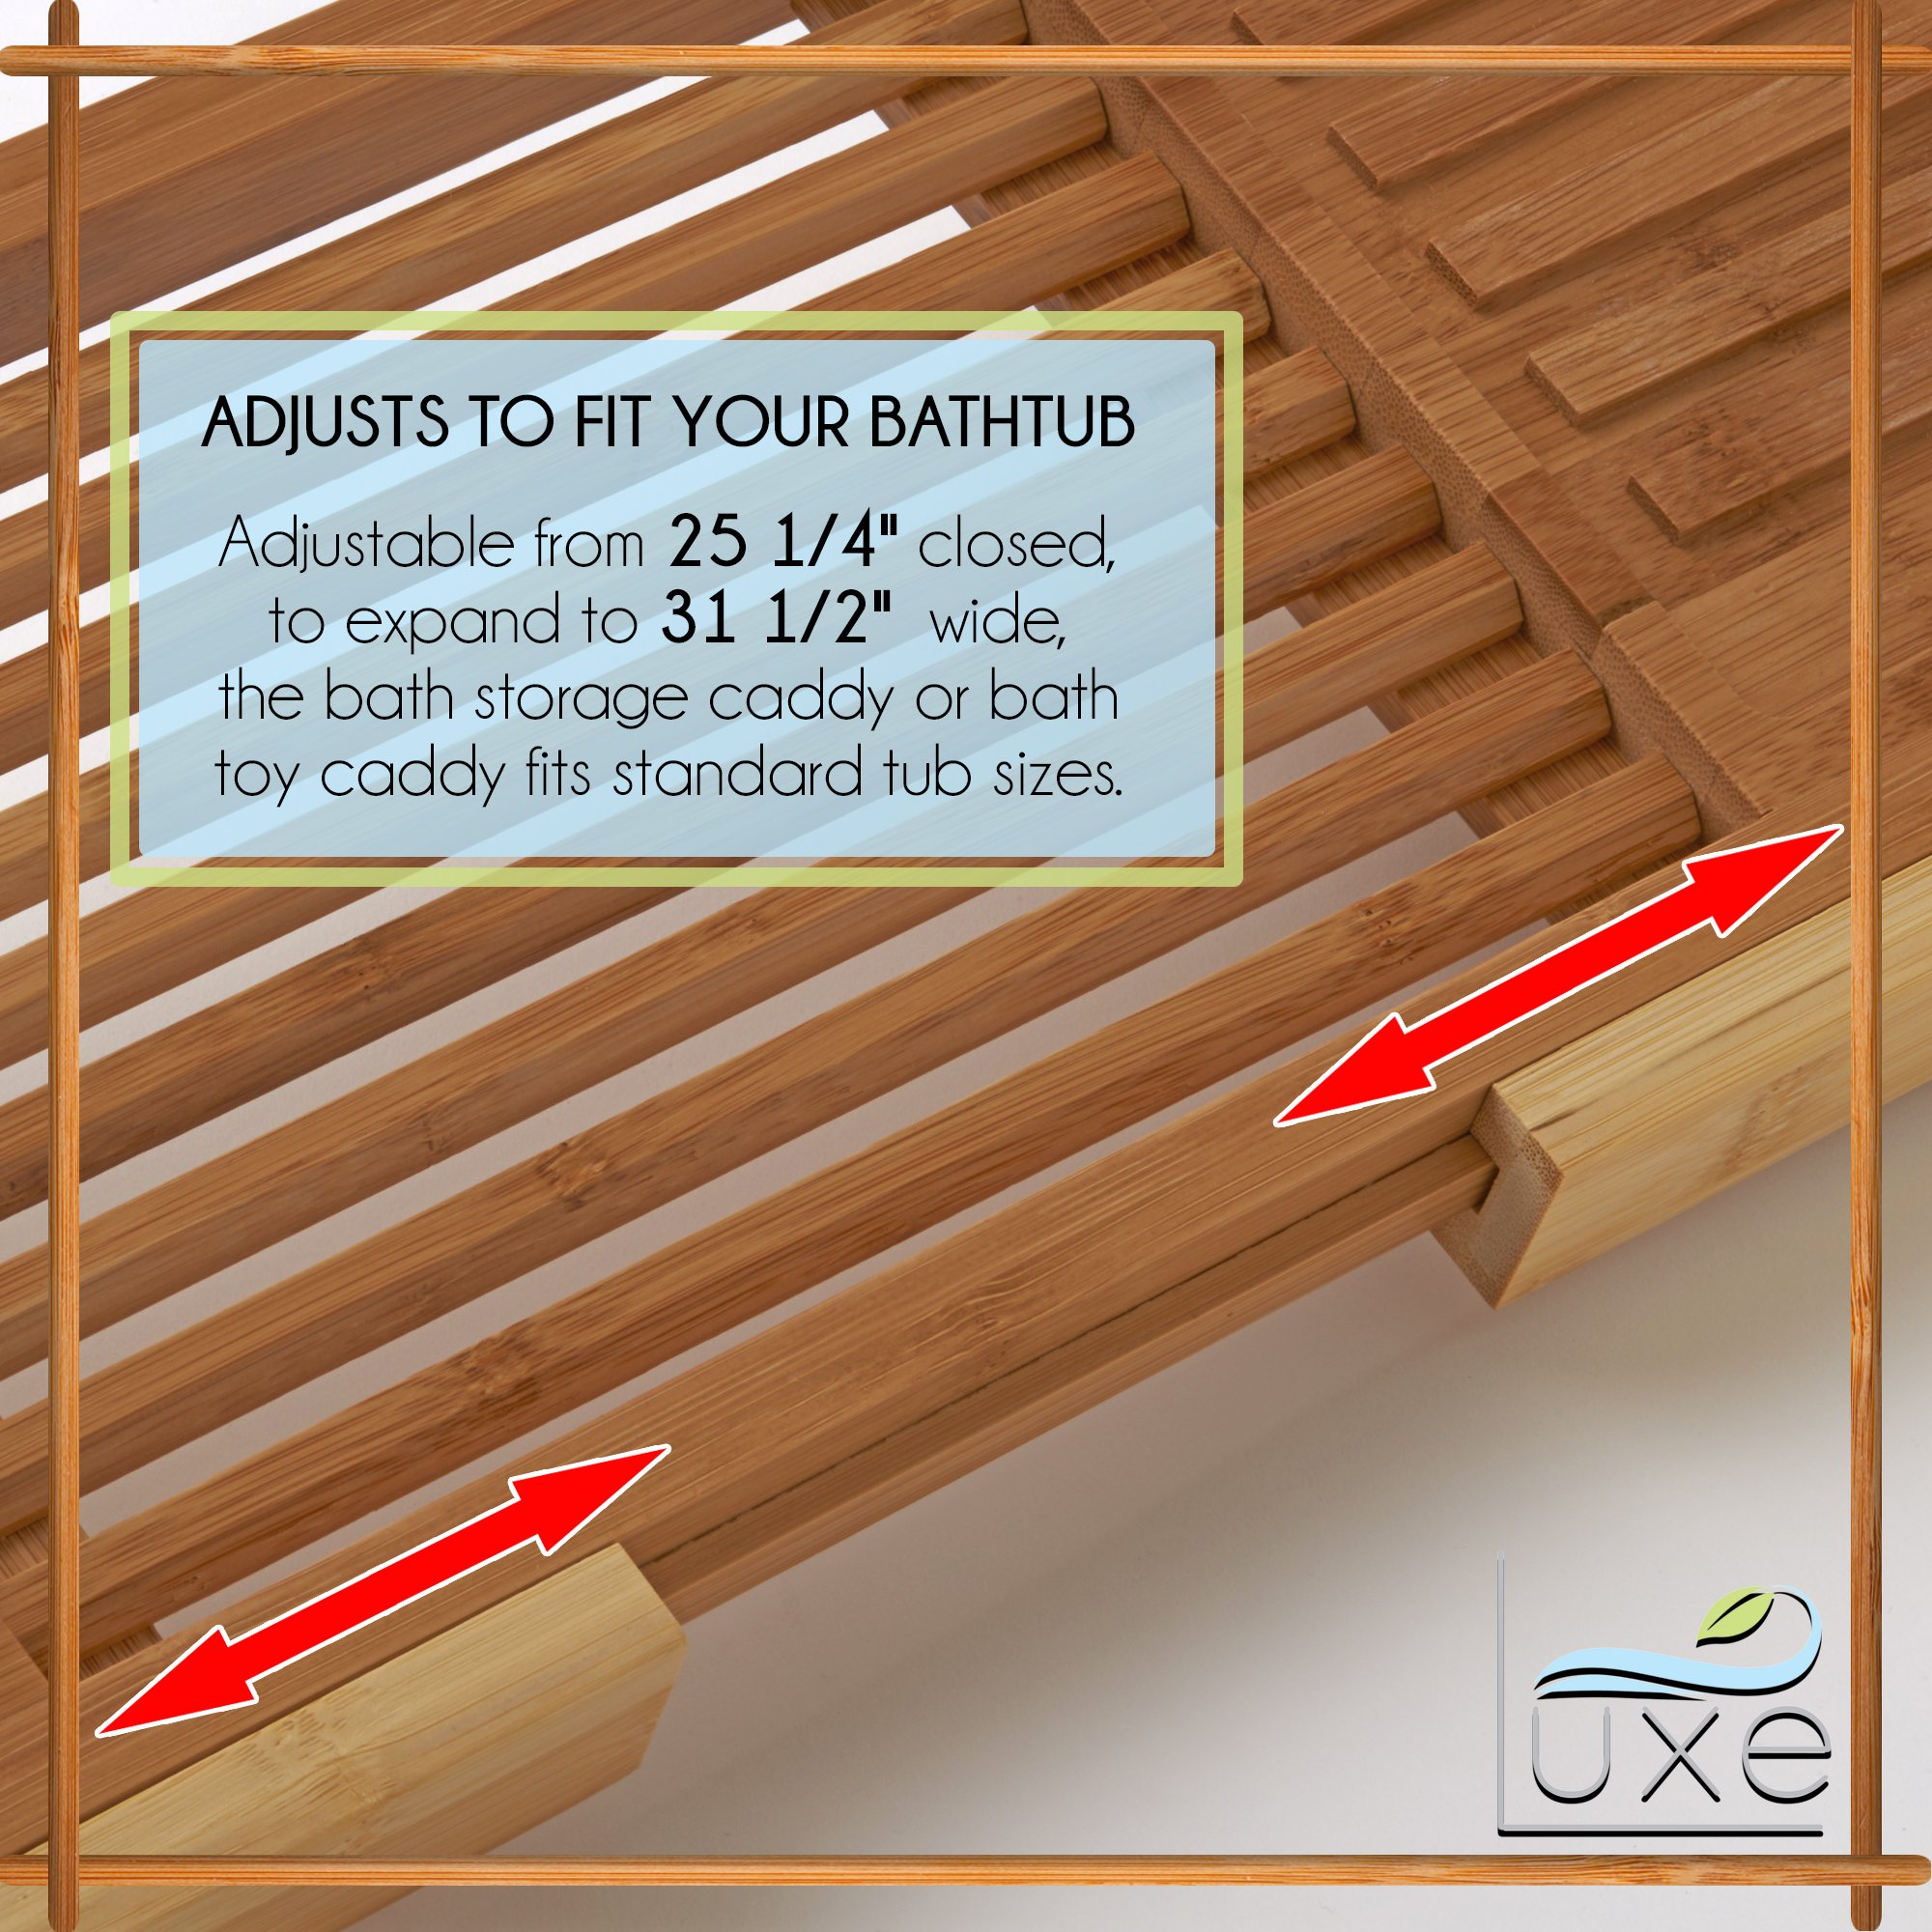 Luxe Expandable Bamboo Bathtub Caddy Adjustable Wooden Serving Tray & Organizer w Book Reading Rack, Wine Glass Holder by Luxe (Image #4)